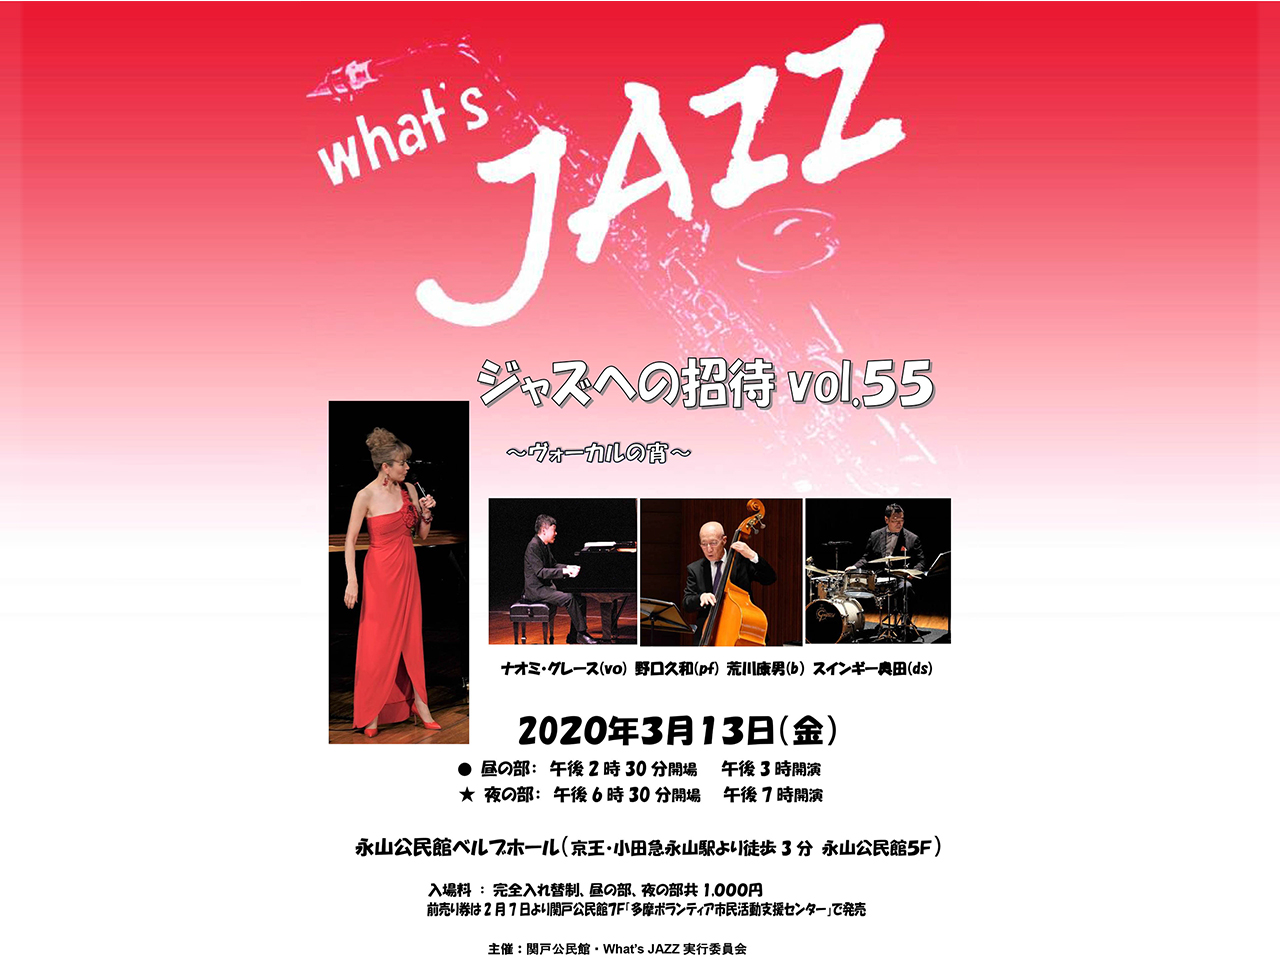 whatsjazz vol55